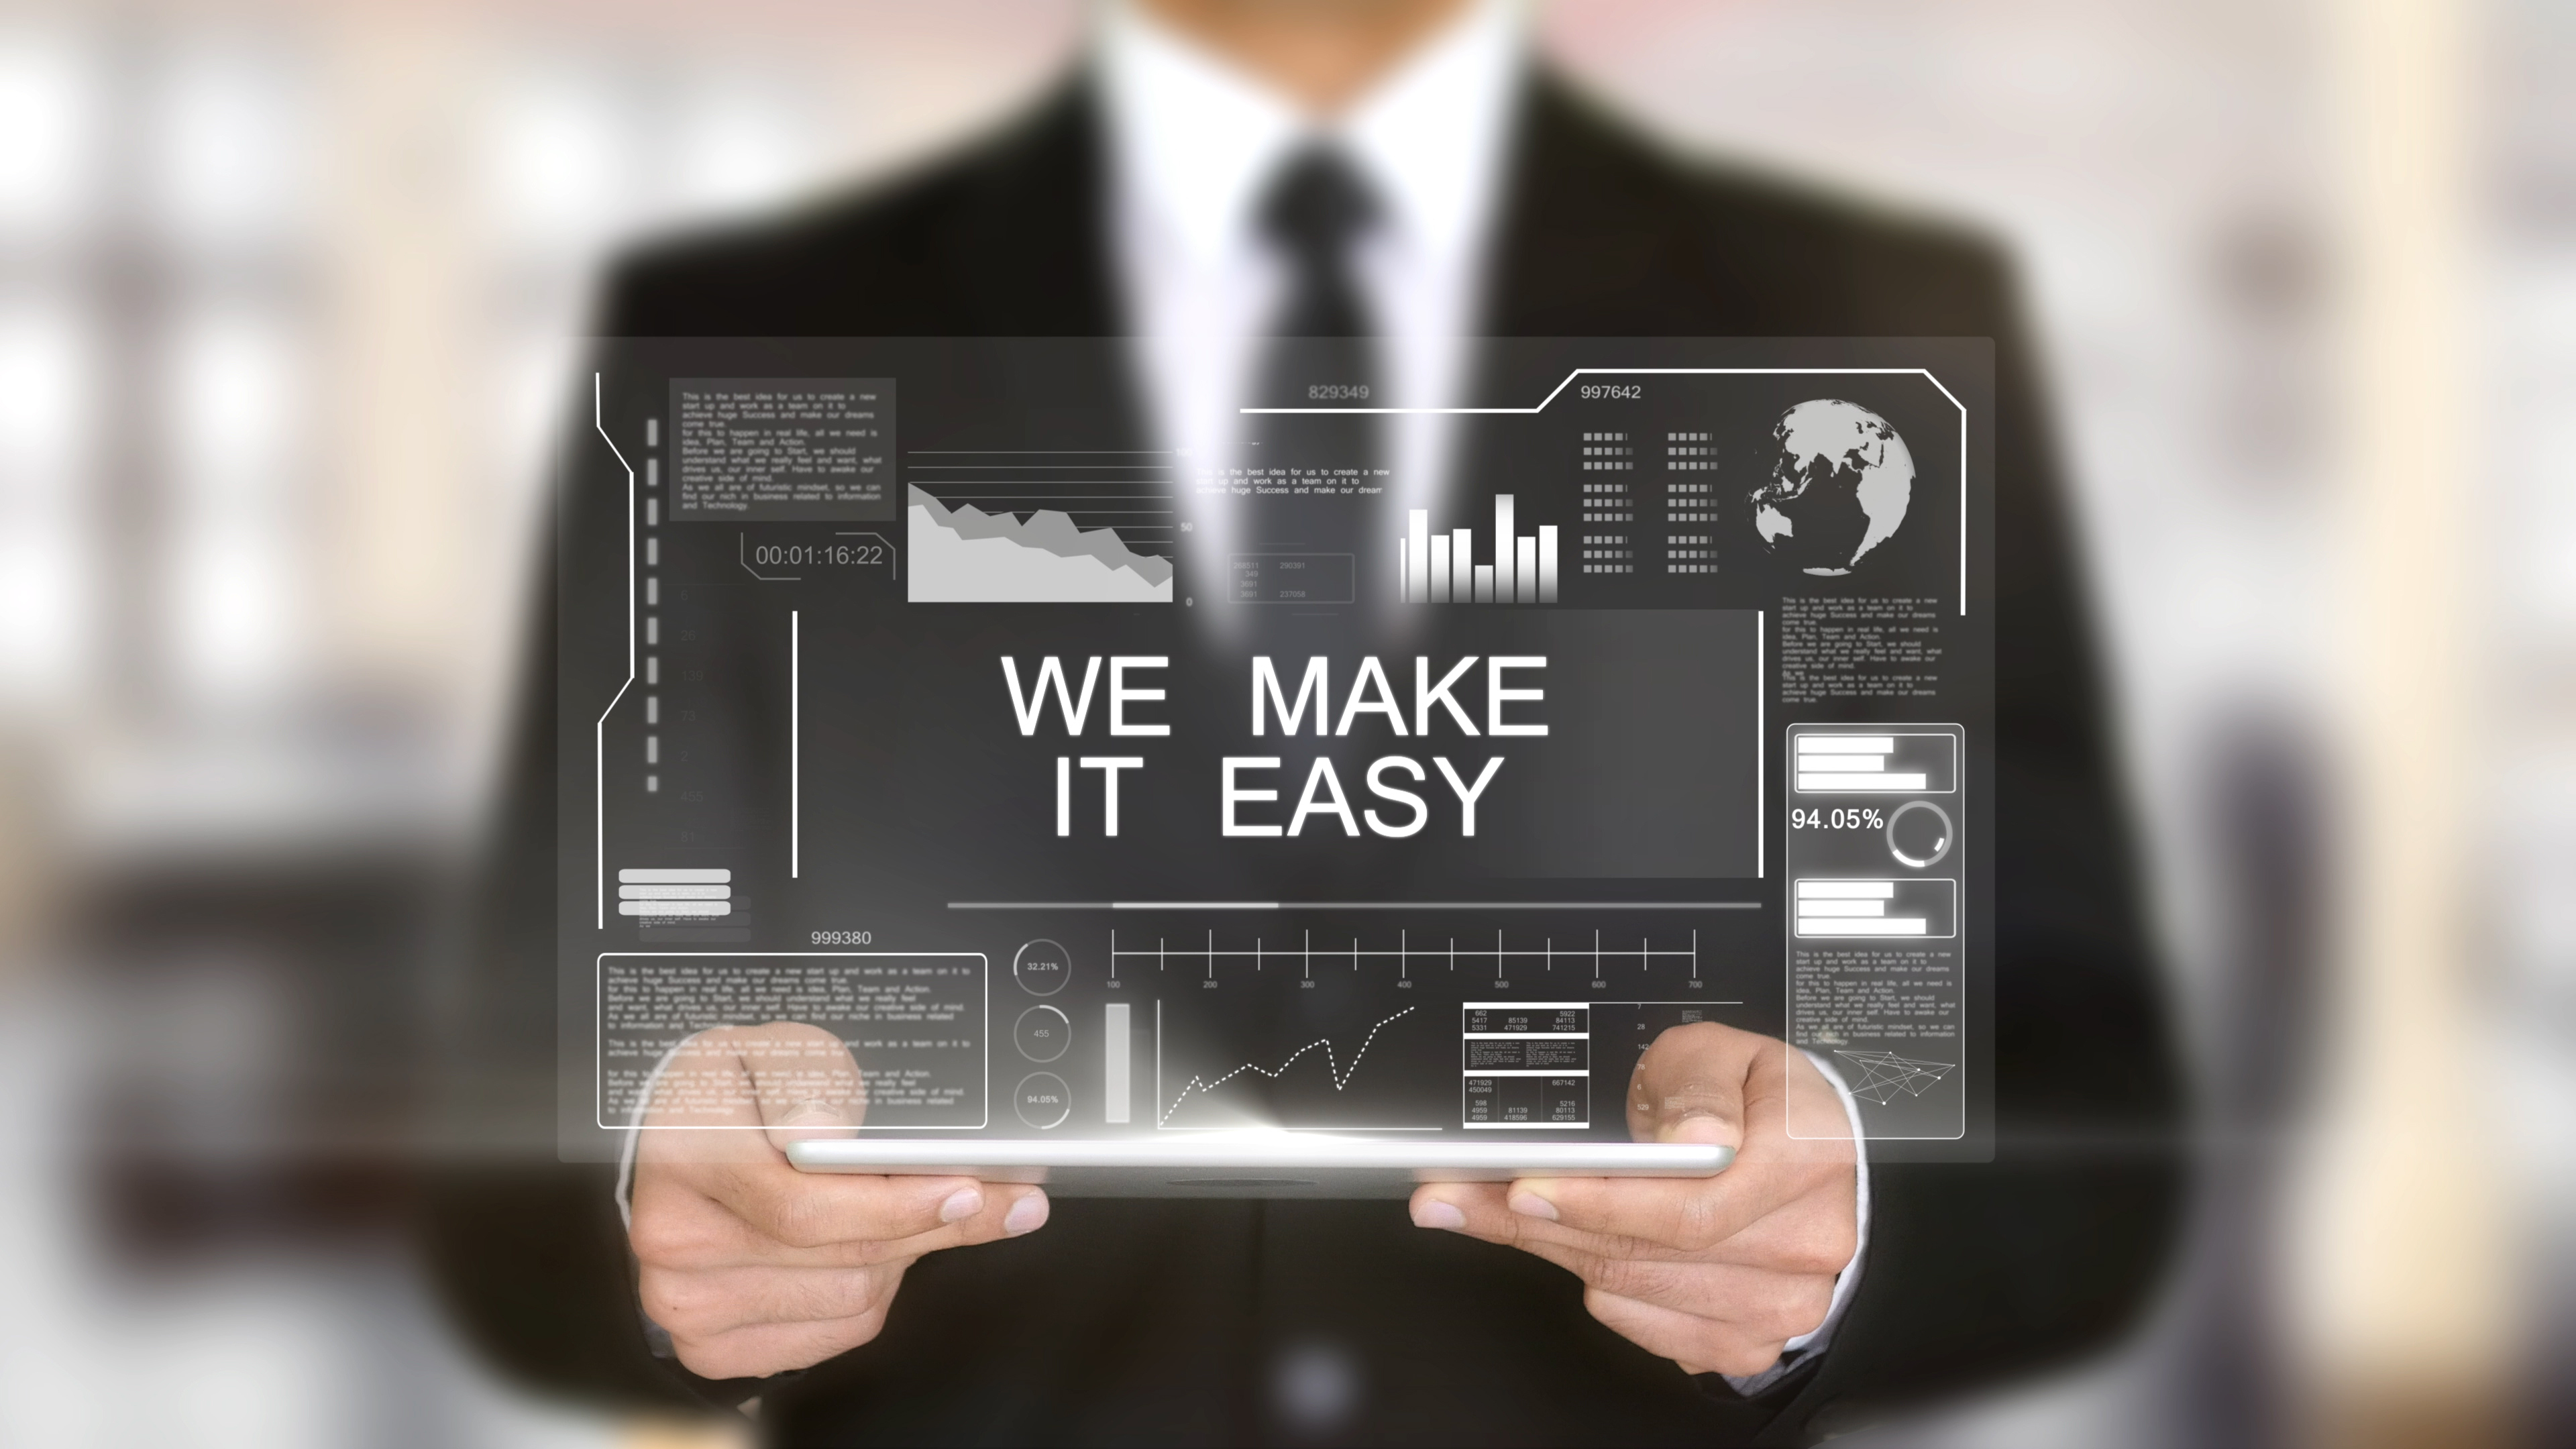 managed-it-services-security-threat